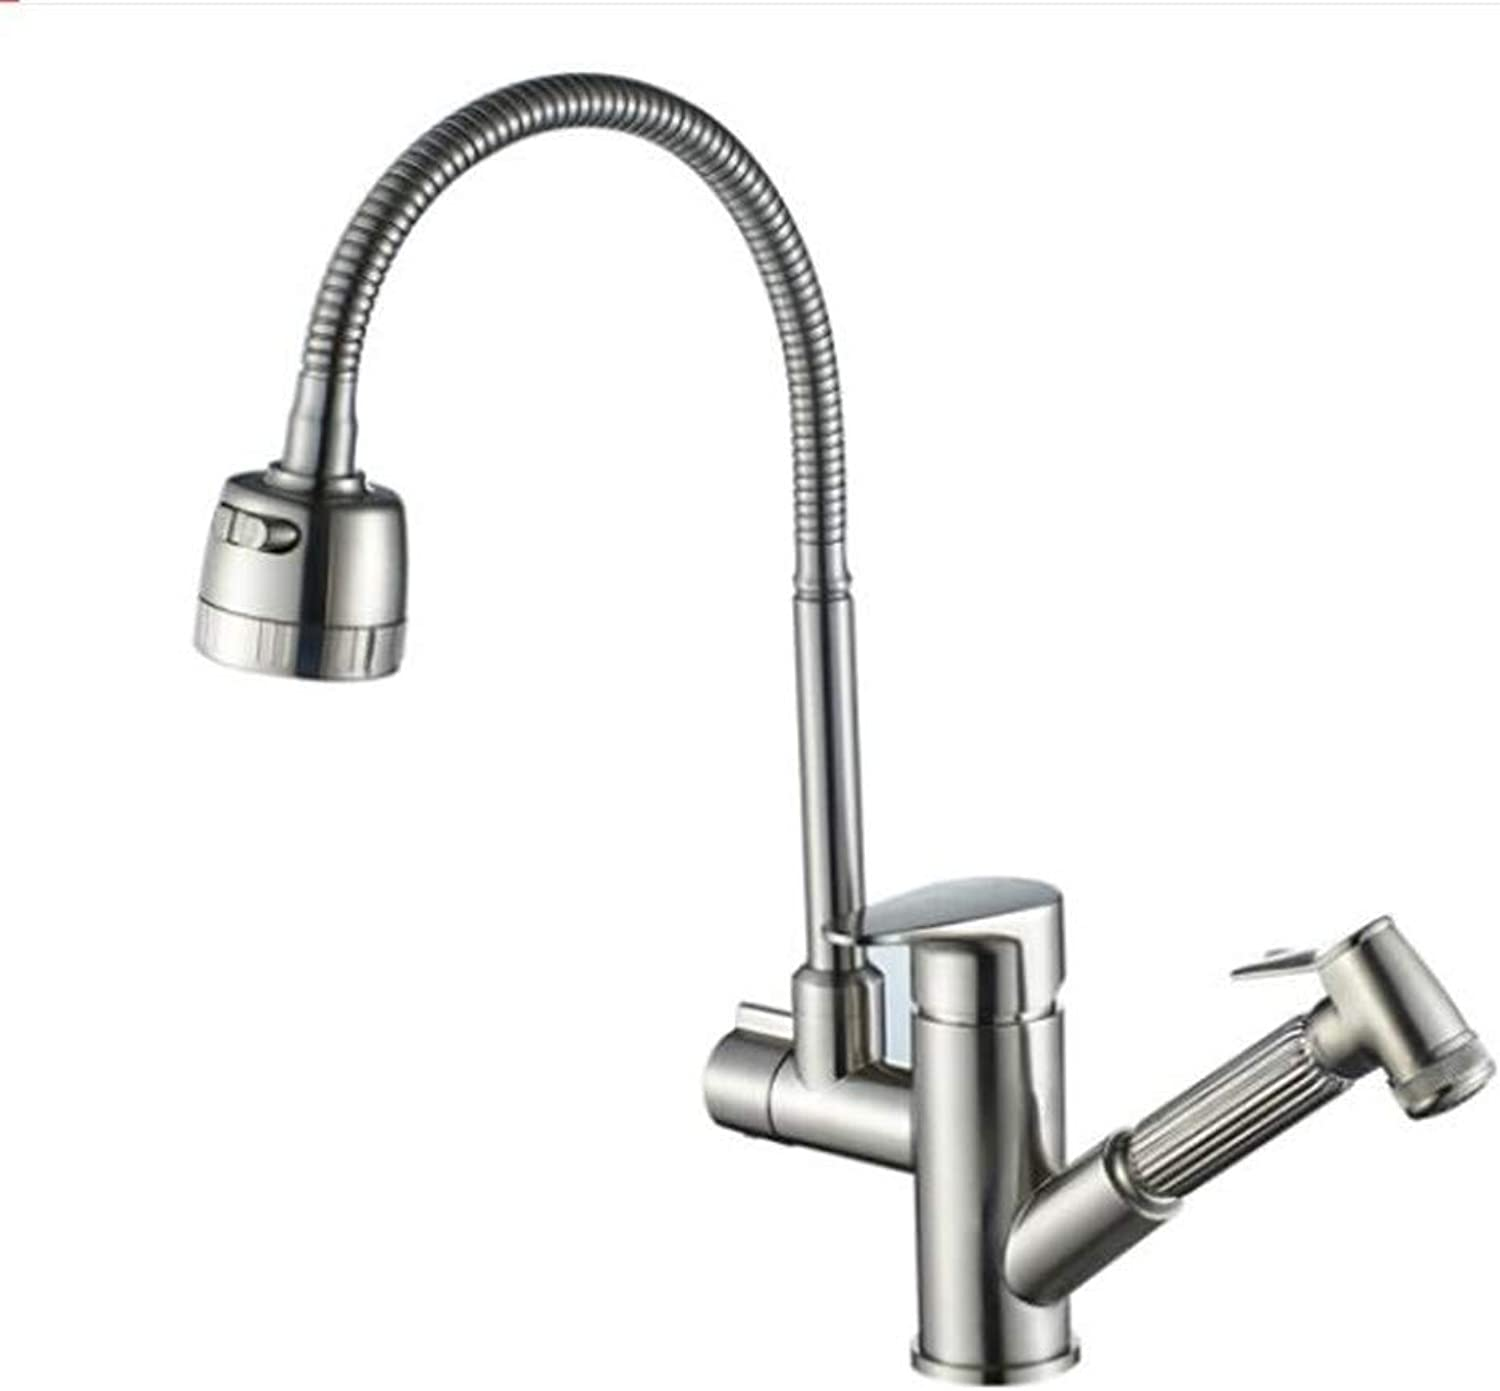 Bathroom Sink Basin Lever Mixer Tap Kitchen Dishwasher Faucet Pull Cold and Hot Dishwasher Faucet Universal redary Kitchen Stainless Steel Sink Faucet